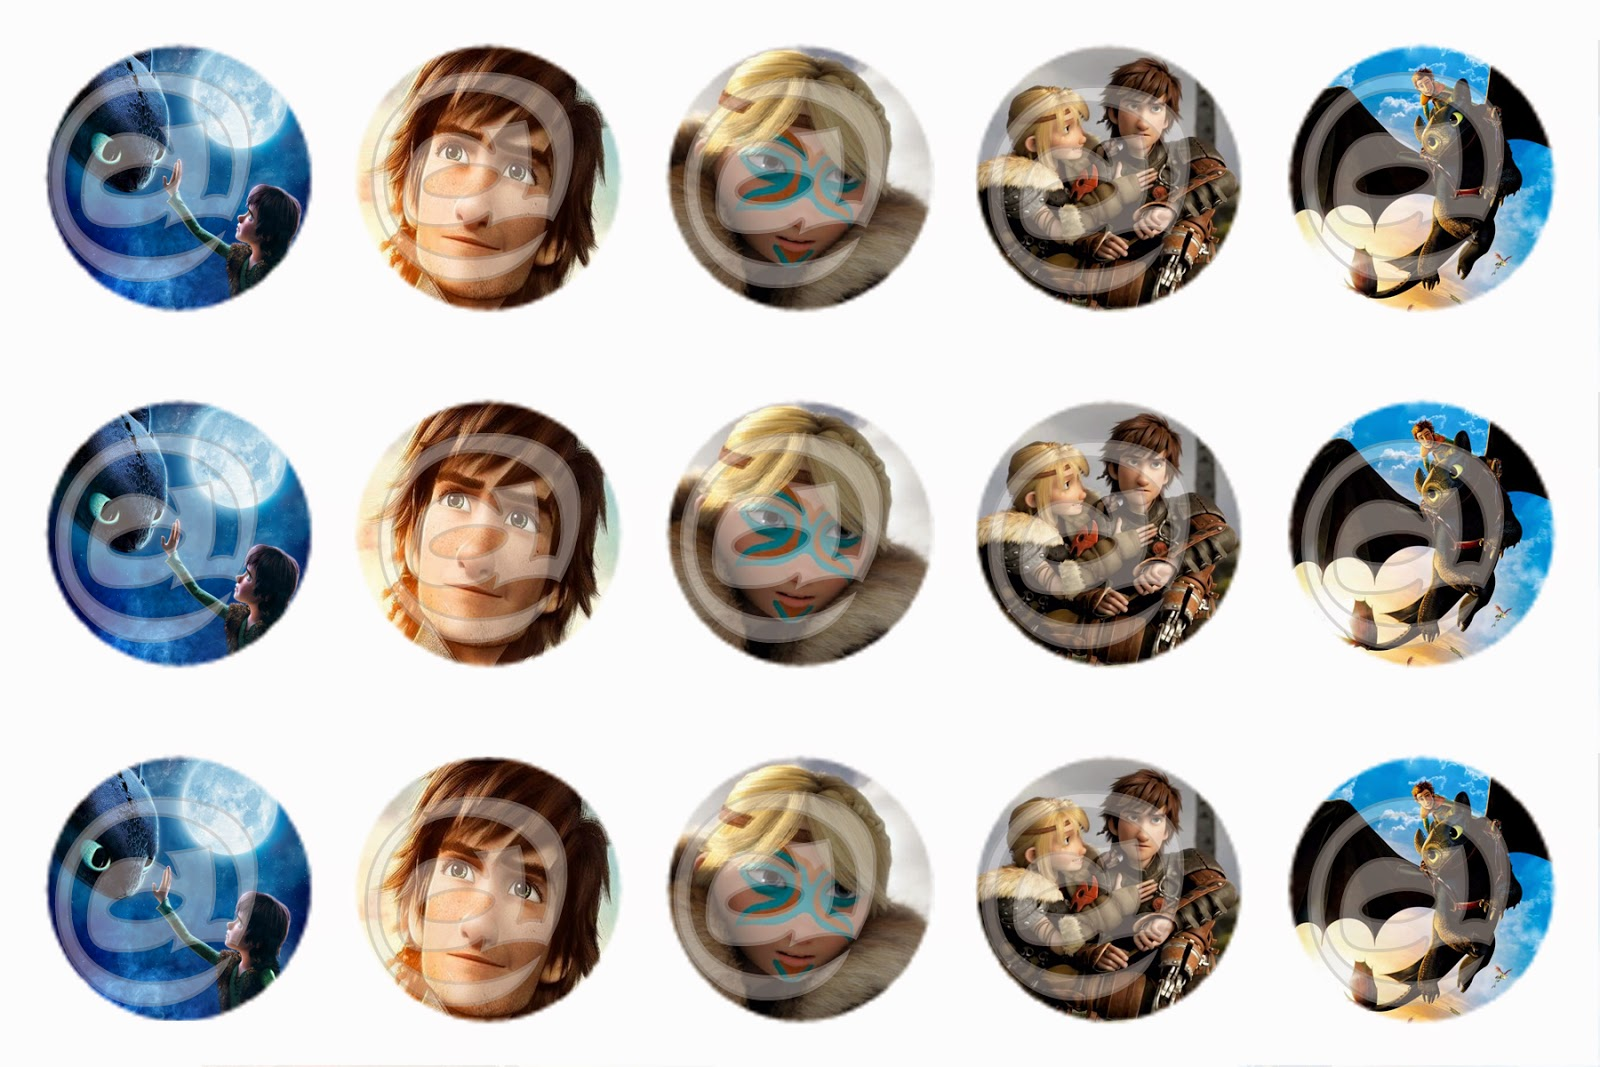 Unique bottle cap designs disney how to train your dragon for Cool bottle cap designs